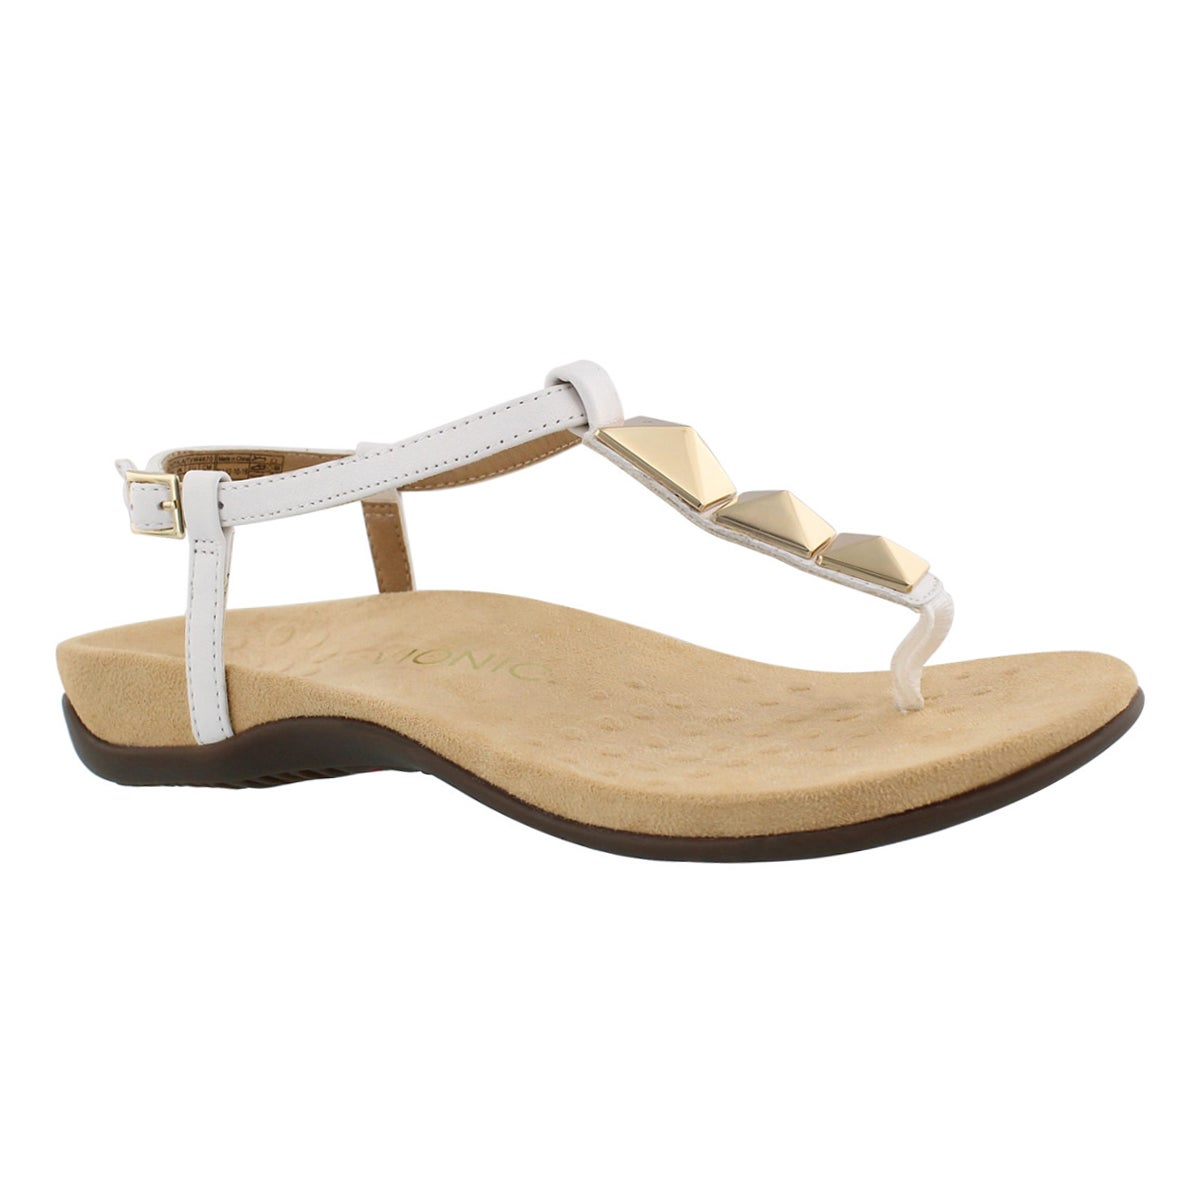 Women's NALA white arch support thong sandals